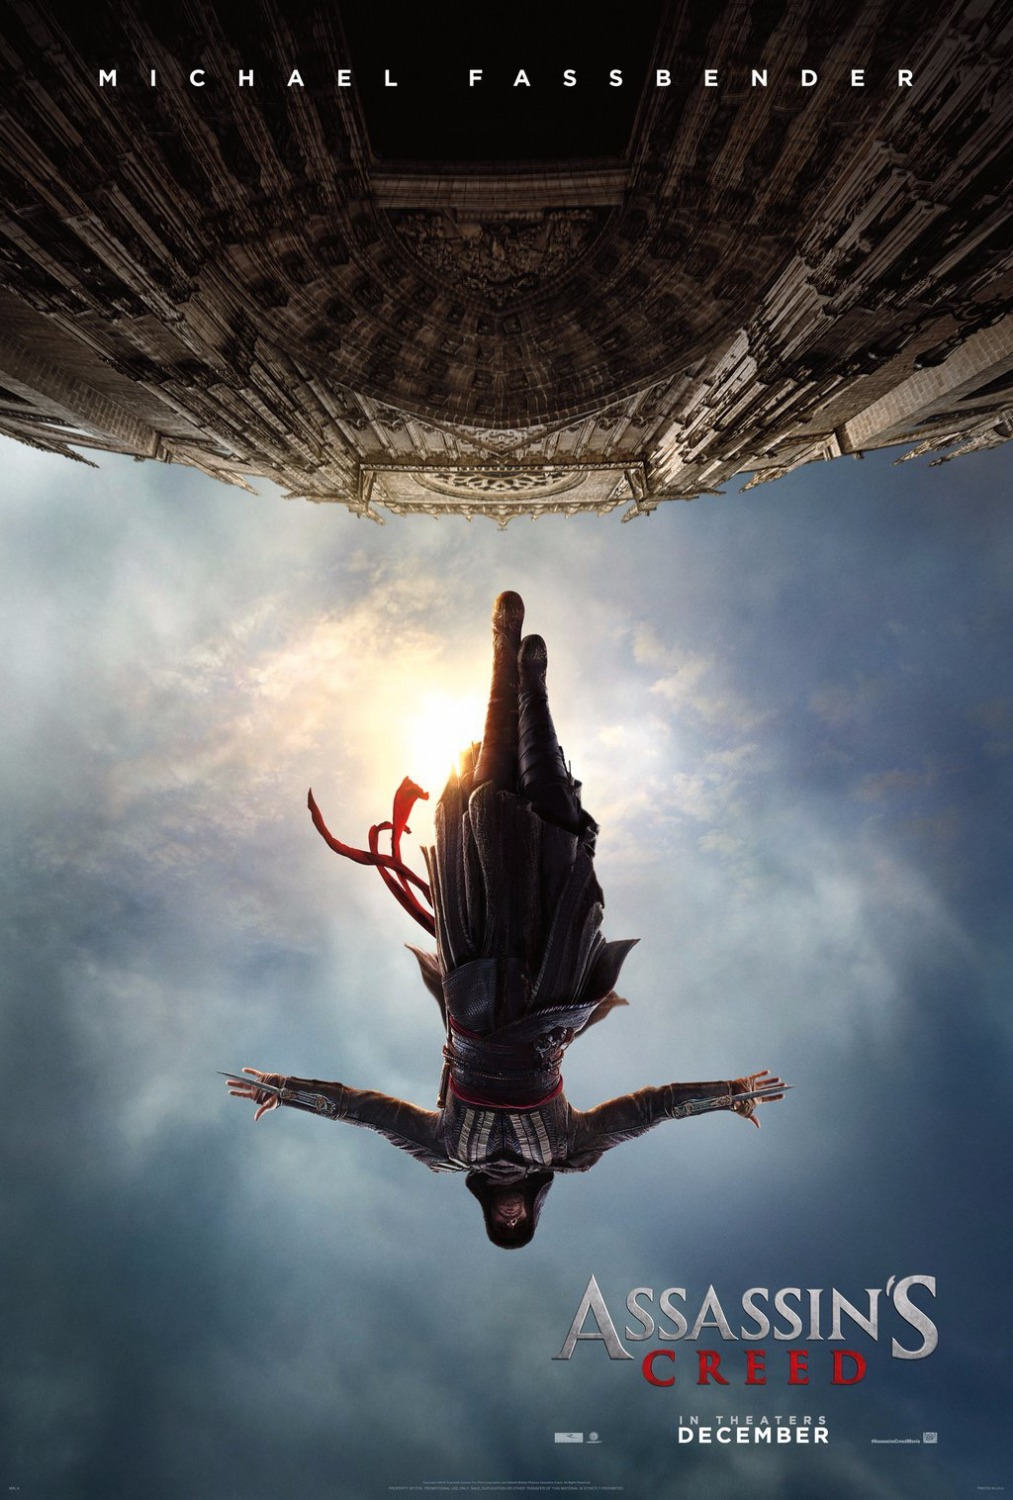 Assassin's Creed trailer: la hermandad secreta.